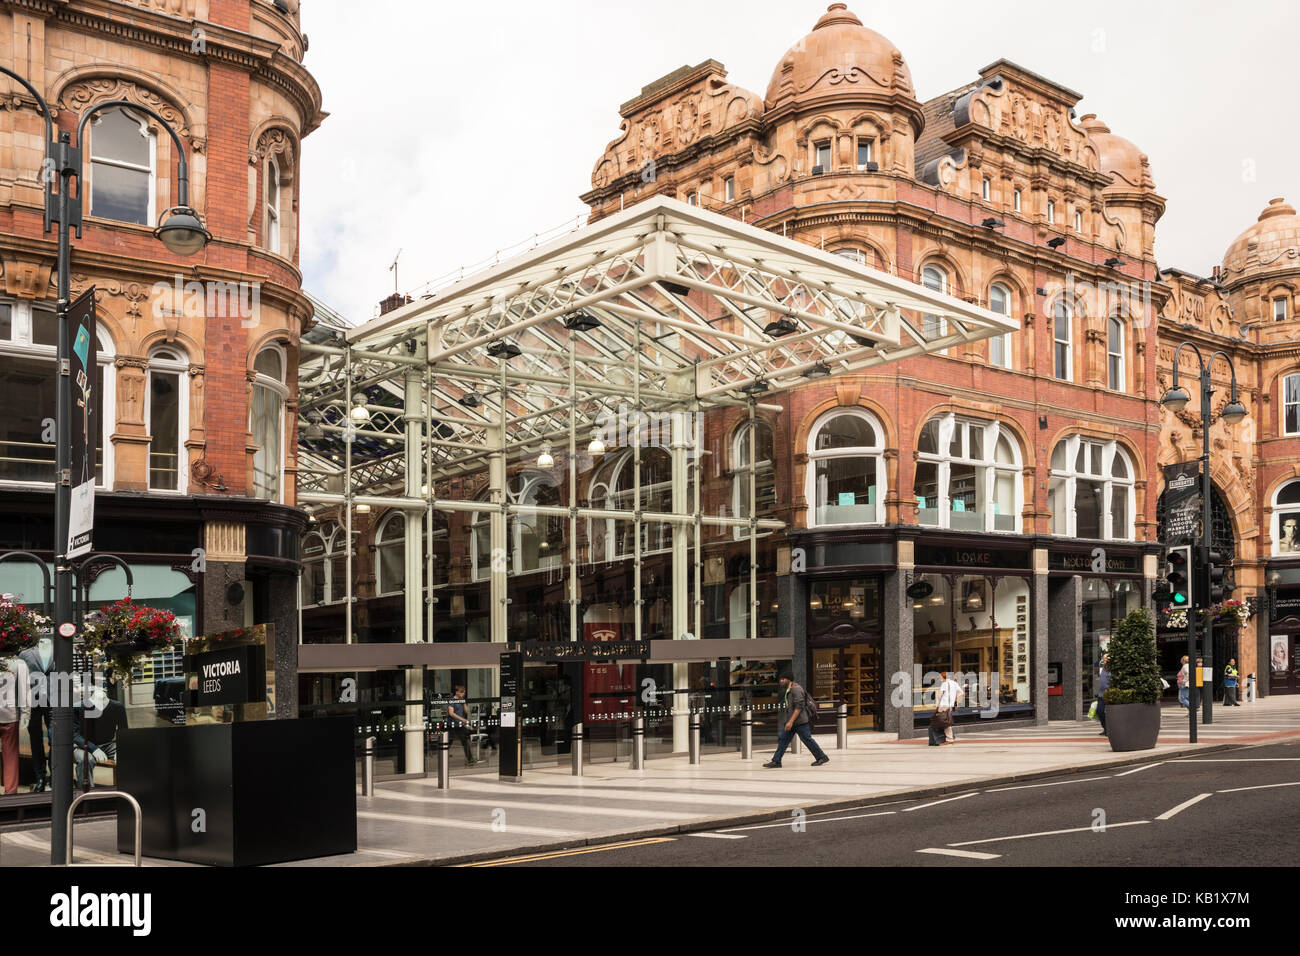 Exterior of the County Arcade and Victoria Arcade in Leeds City Centre - Stock Image